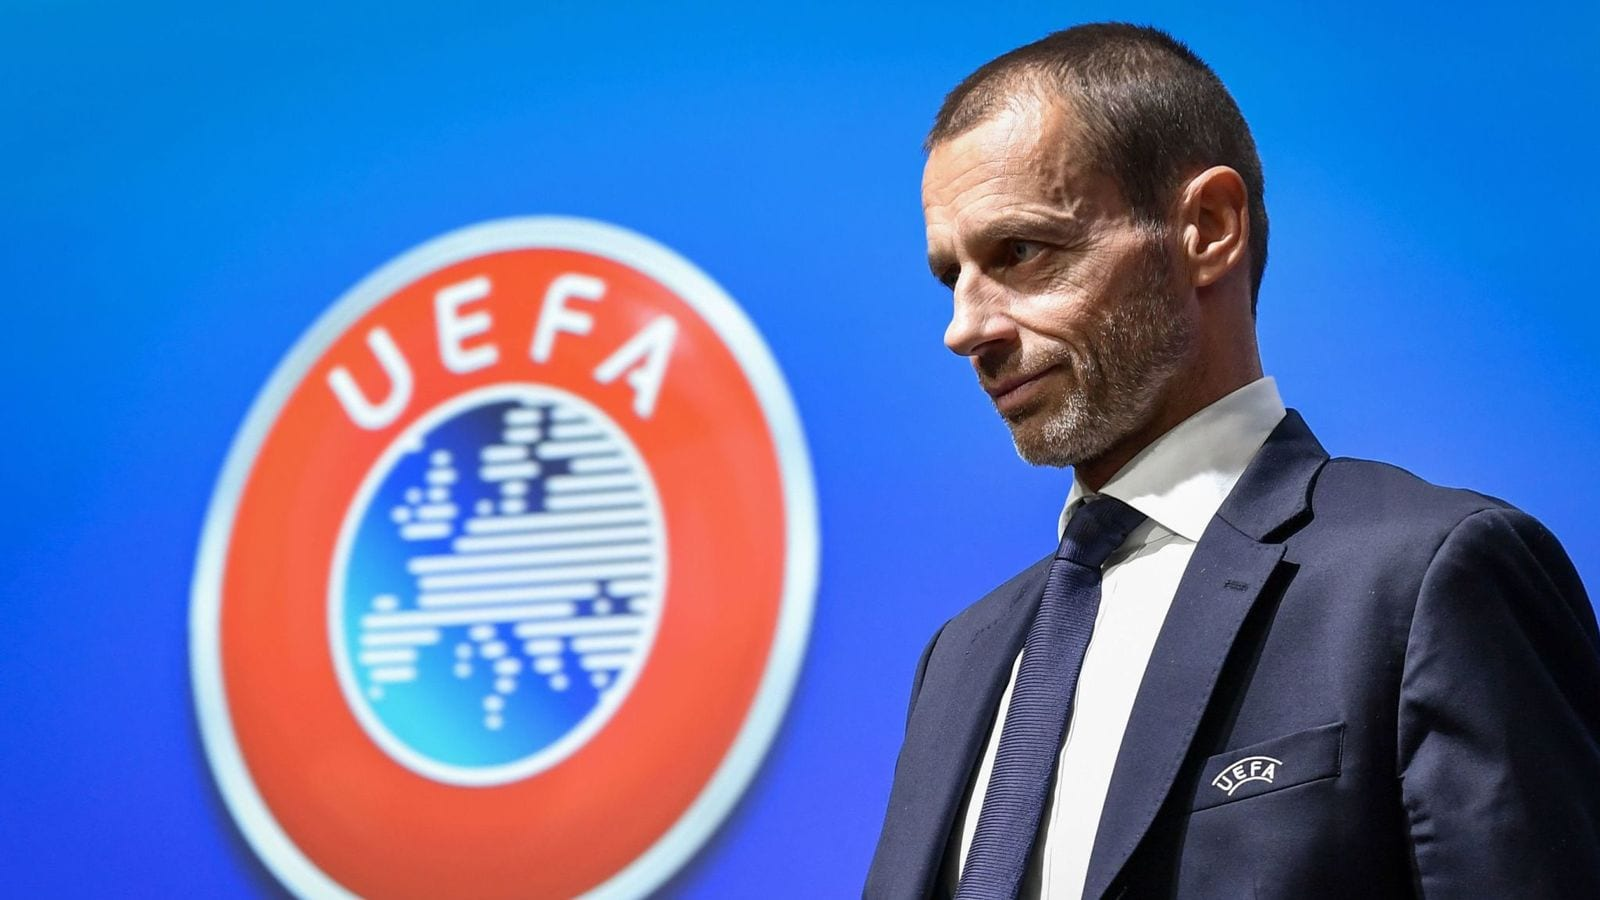 UEFA advises European leagues not to terminate periods and hopes football restarts in July|Football News|Sky Sports